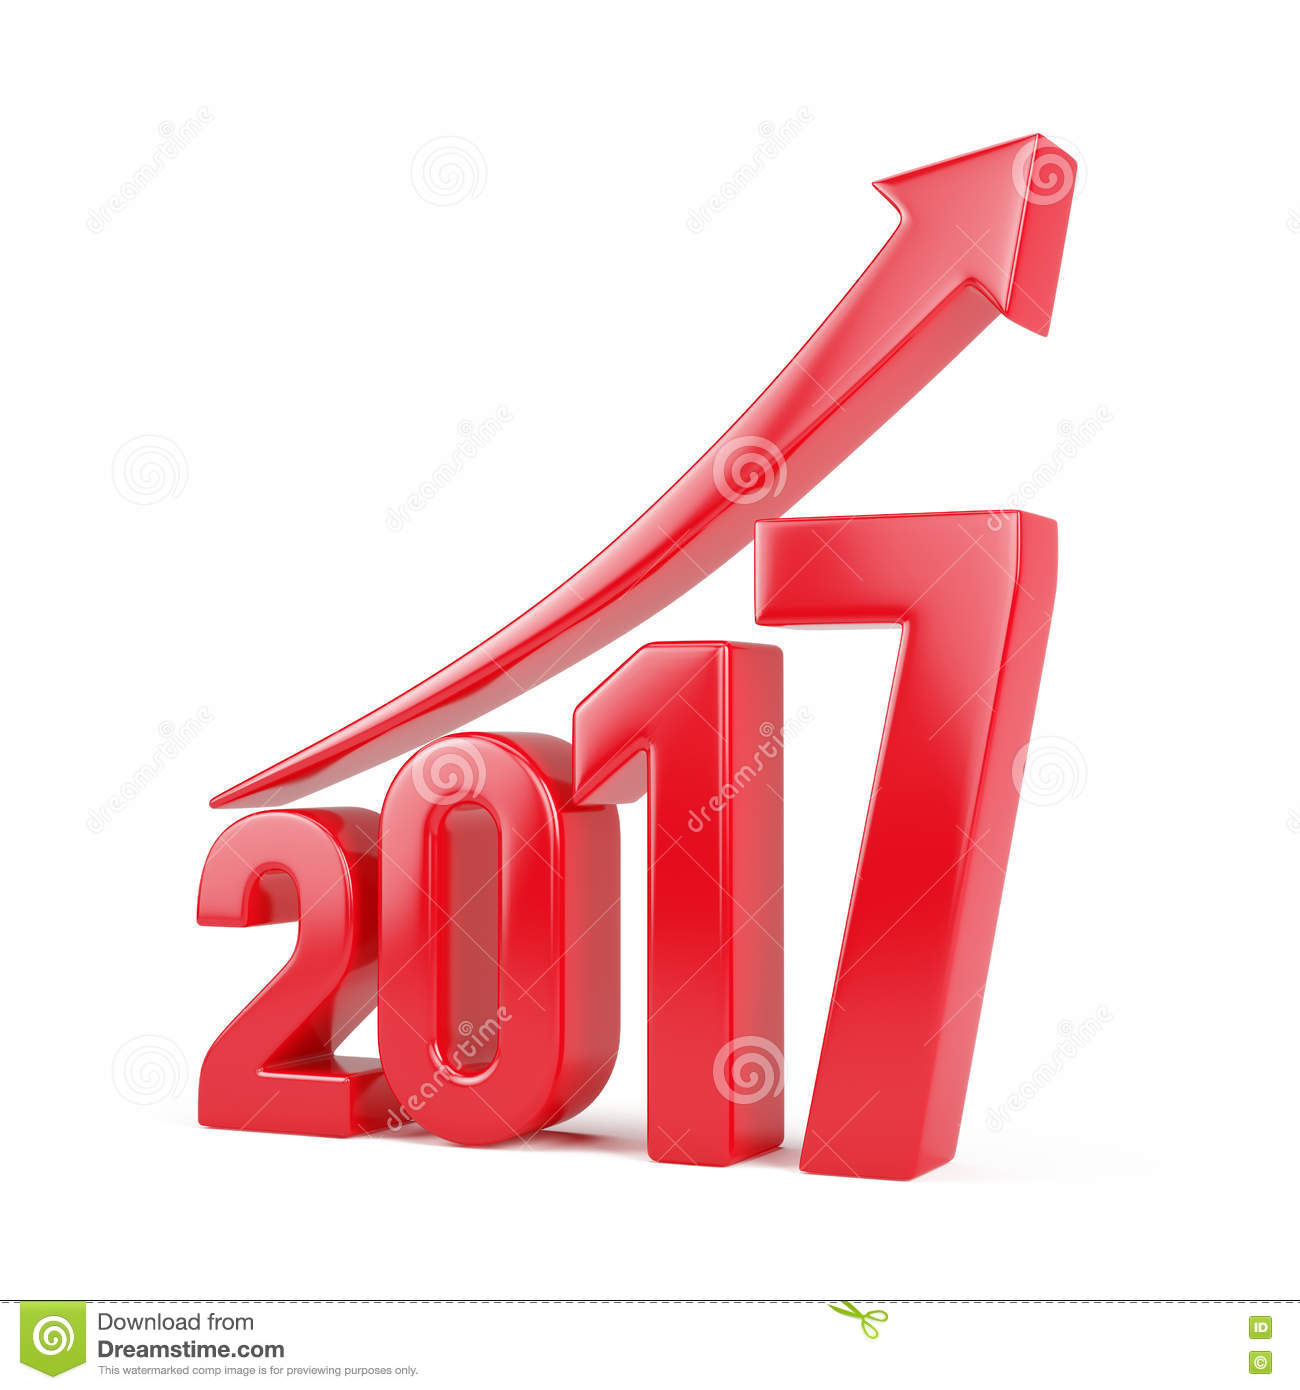 Red 2017 Year With Arrow Up - Growth Concept Stock Illustration ...